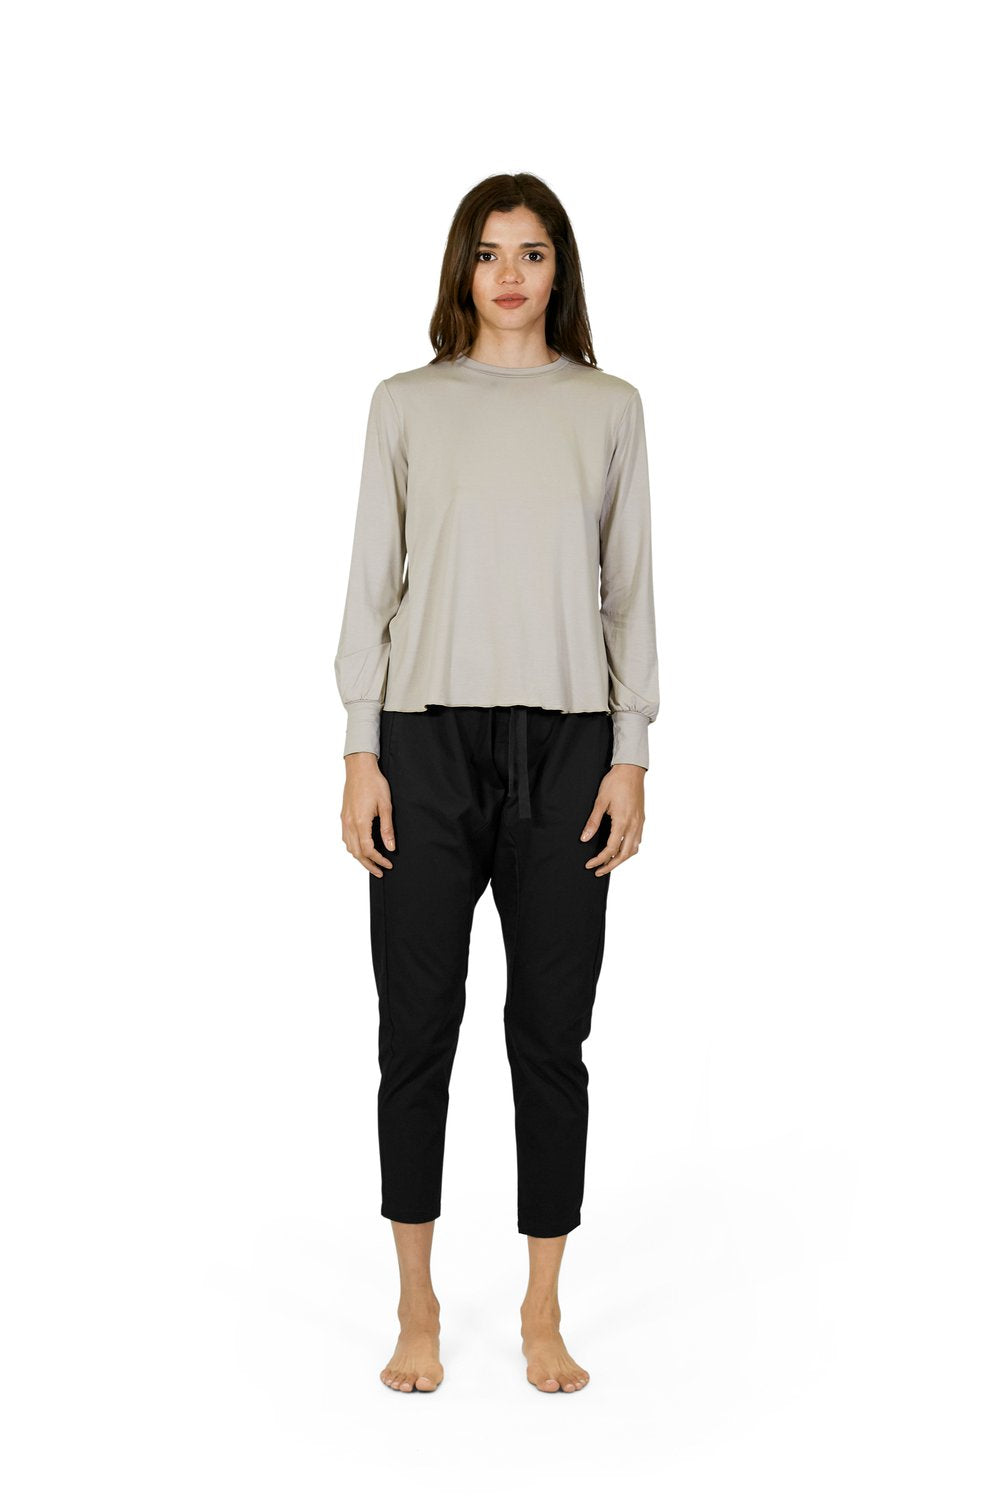 Buy Sanbasics Long Sleeve Top | Buy Sanbasics Fashion Online